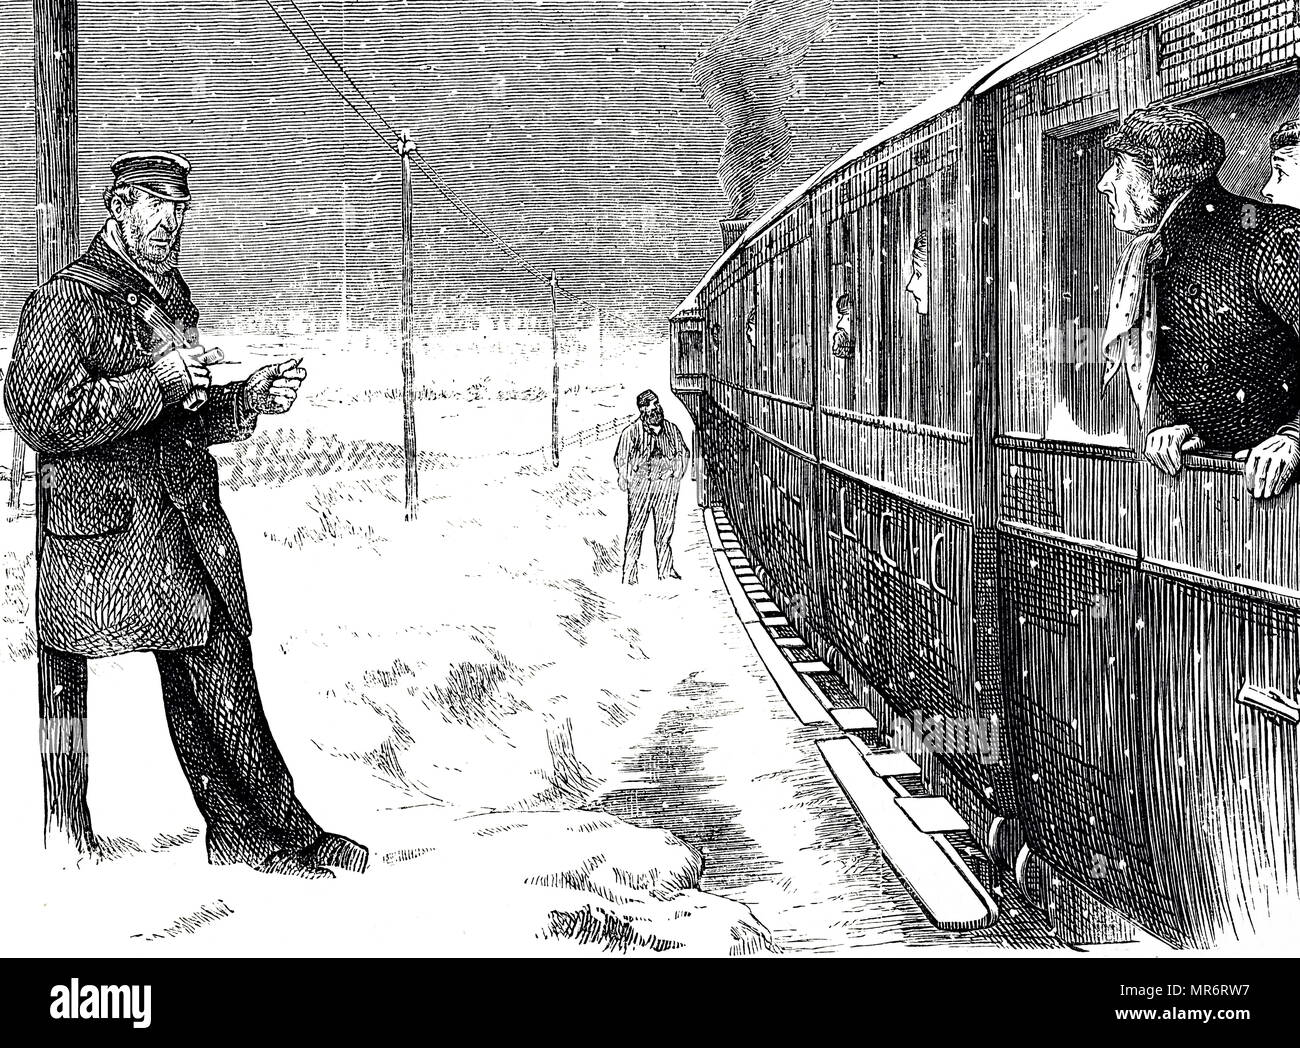 Cartoon depicting a train stranded due to bad weather conditions. Dated 19th century - Stock Image